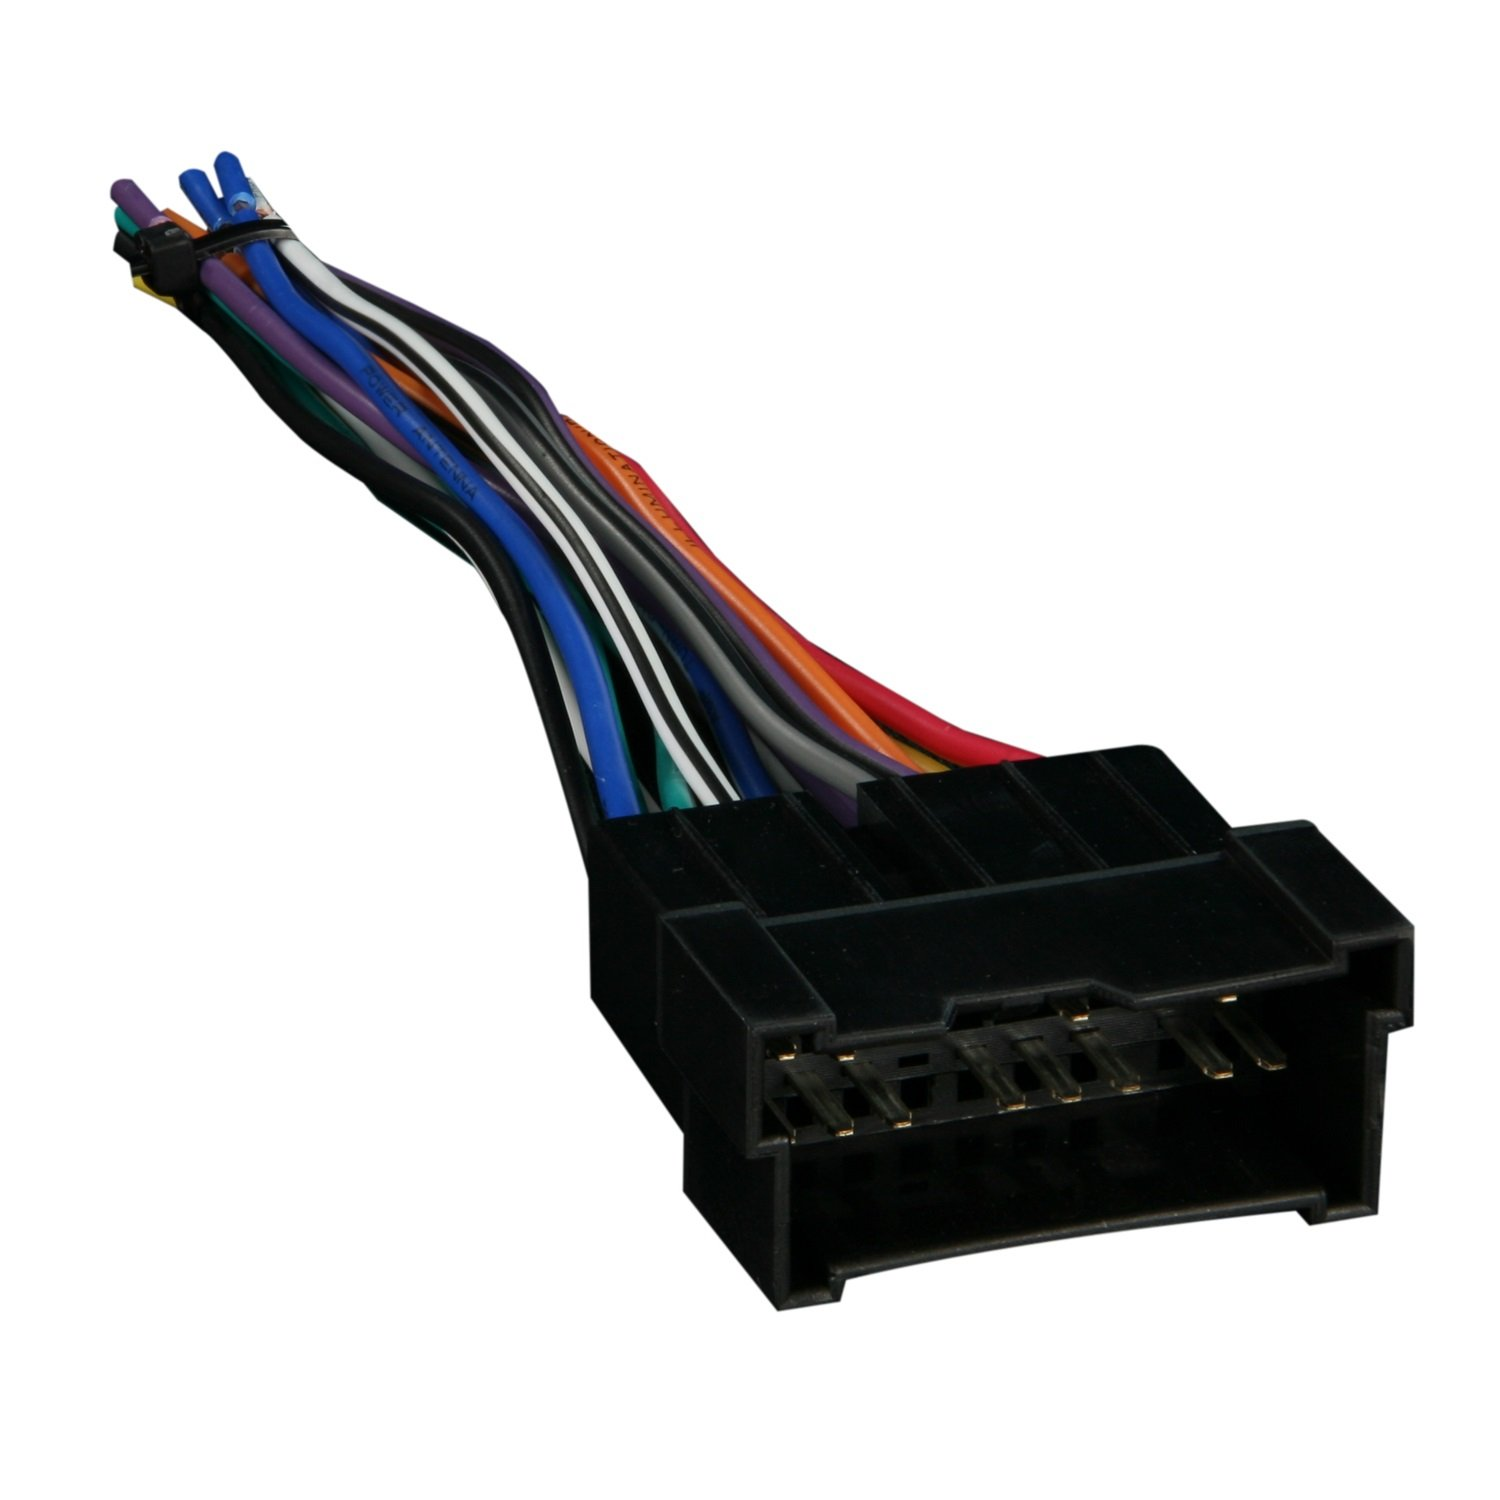 617yeBmOquL._SL1500_ amazon com metra 70 7301 radio wiring harness for hyundai kia 99 GM Factory Radio Wiring Harness at reclaimingppi.co